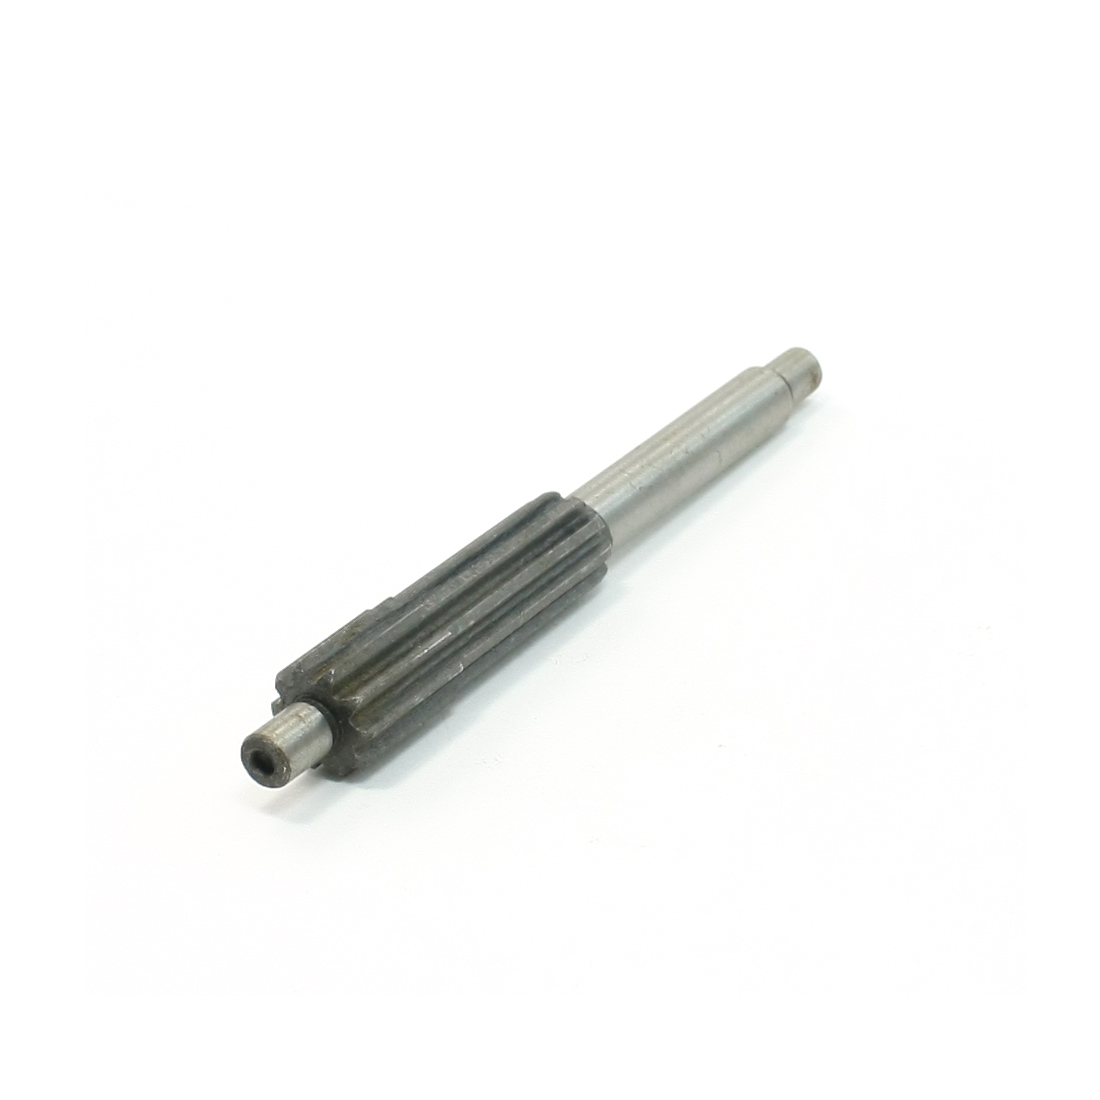 "Electric Tool Repair Part Metal Spur Gear Spline Shaft 4"" Length"